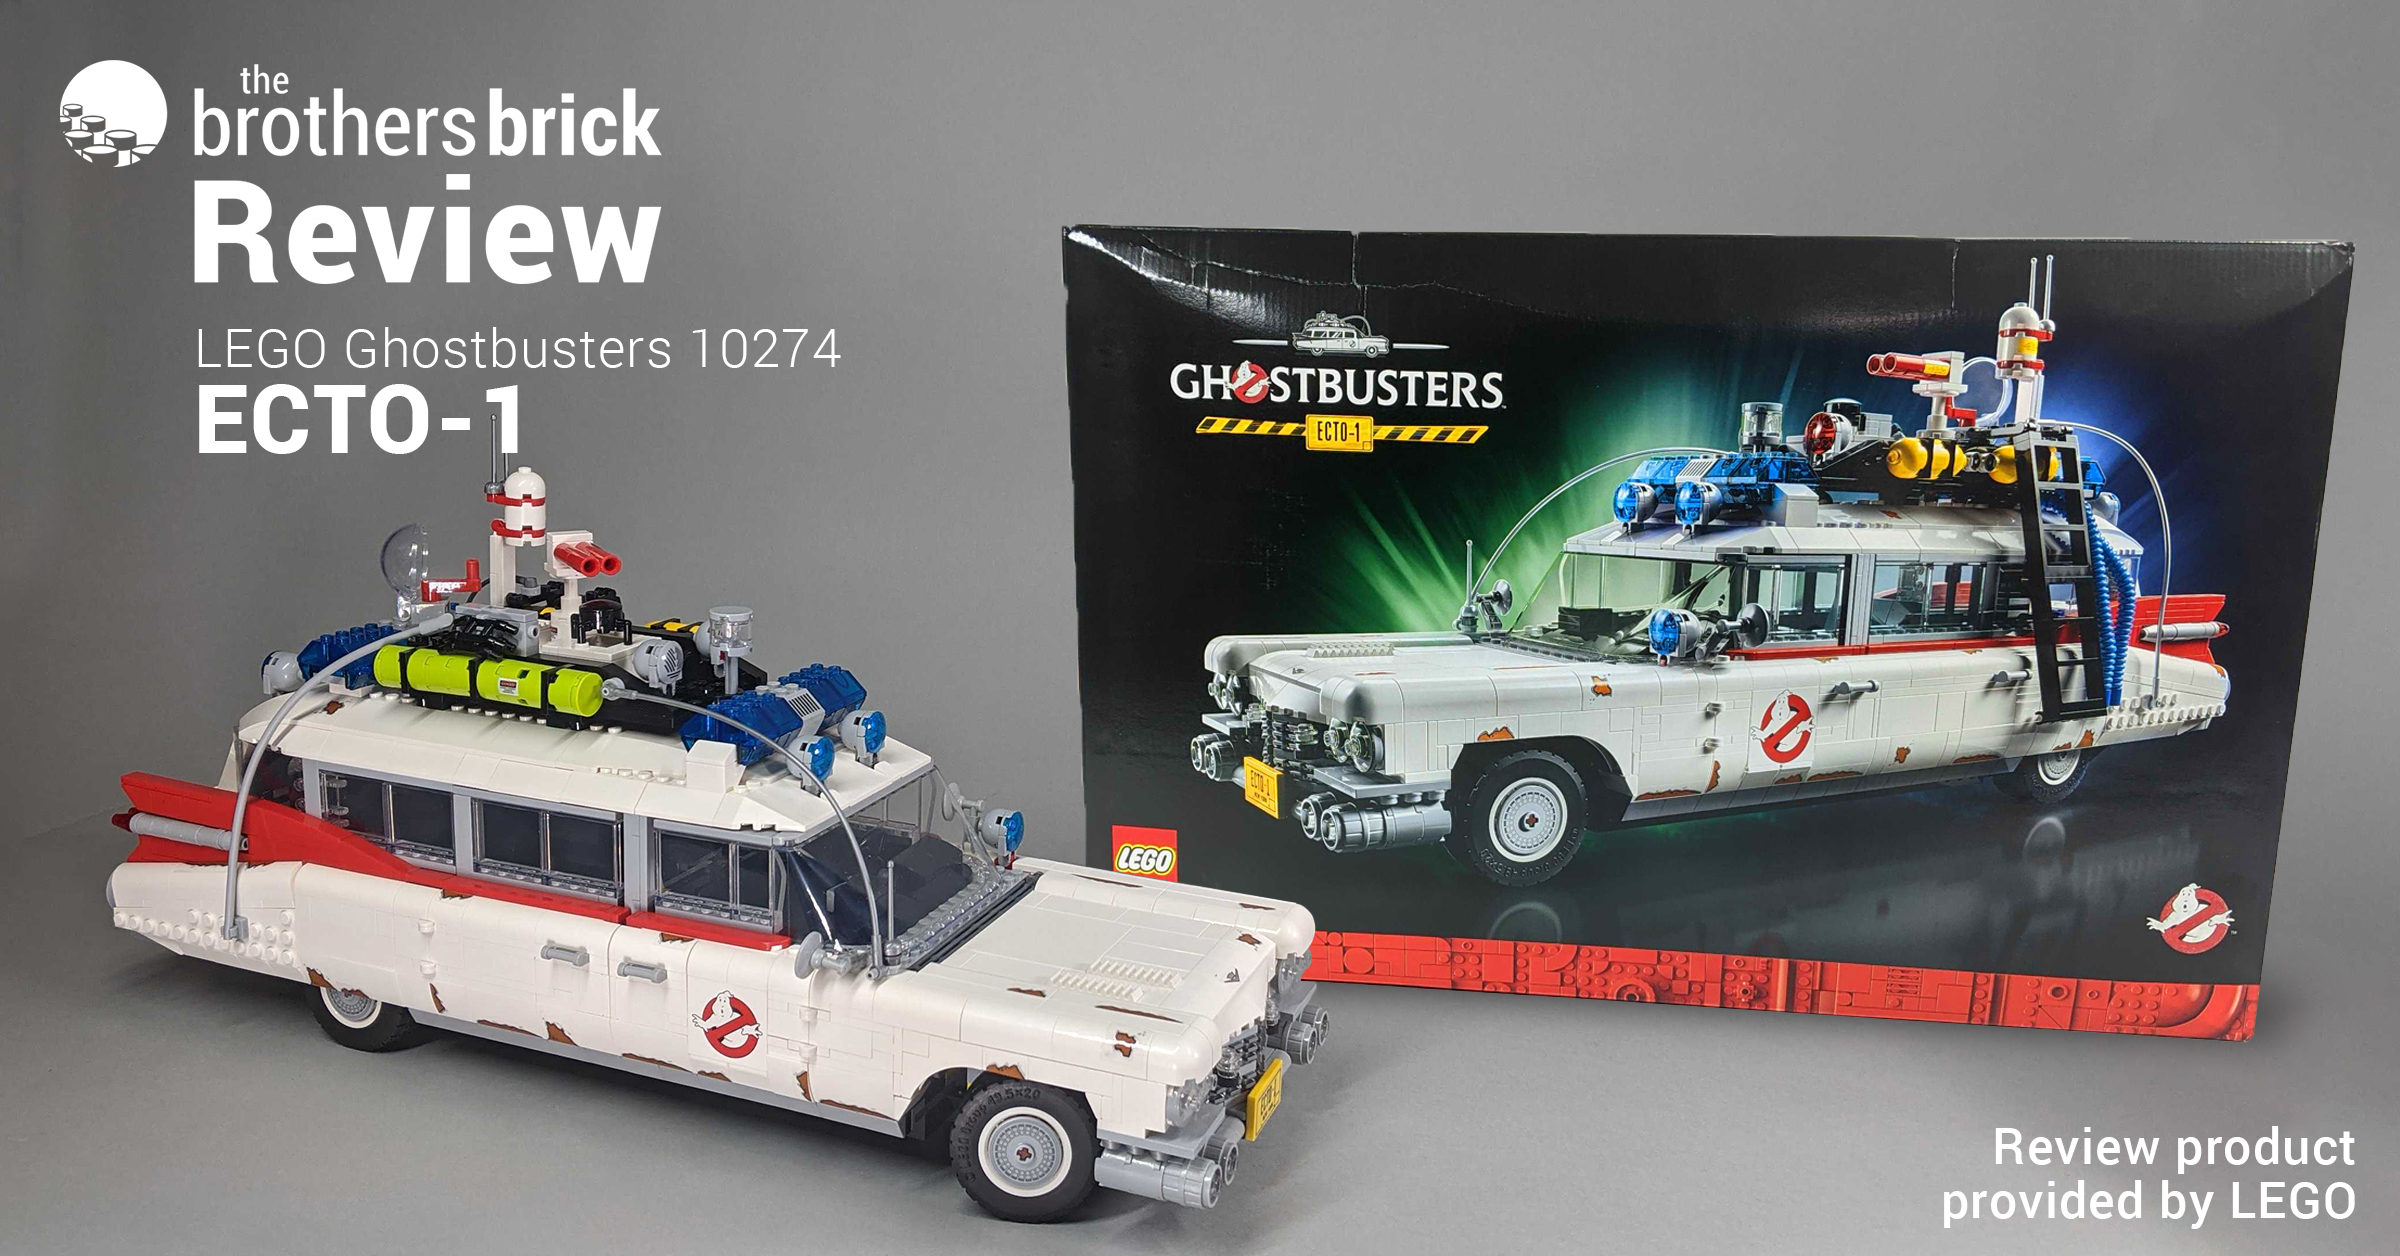 LEGO Ghostbusters 10274 ECTO-1: Everybody can relax, I found the car. [Review]   The Brothers Brick